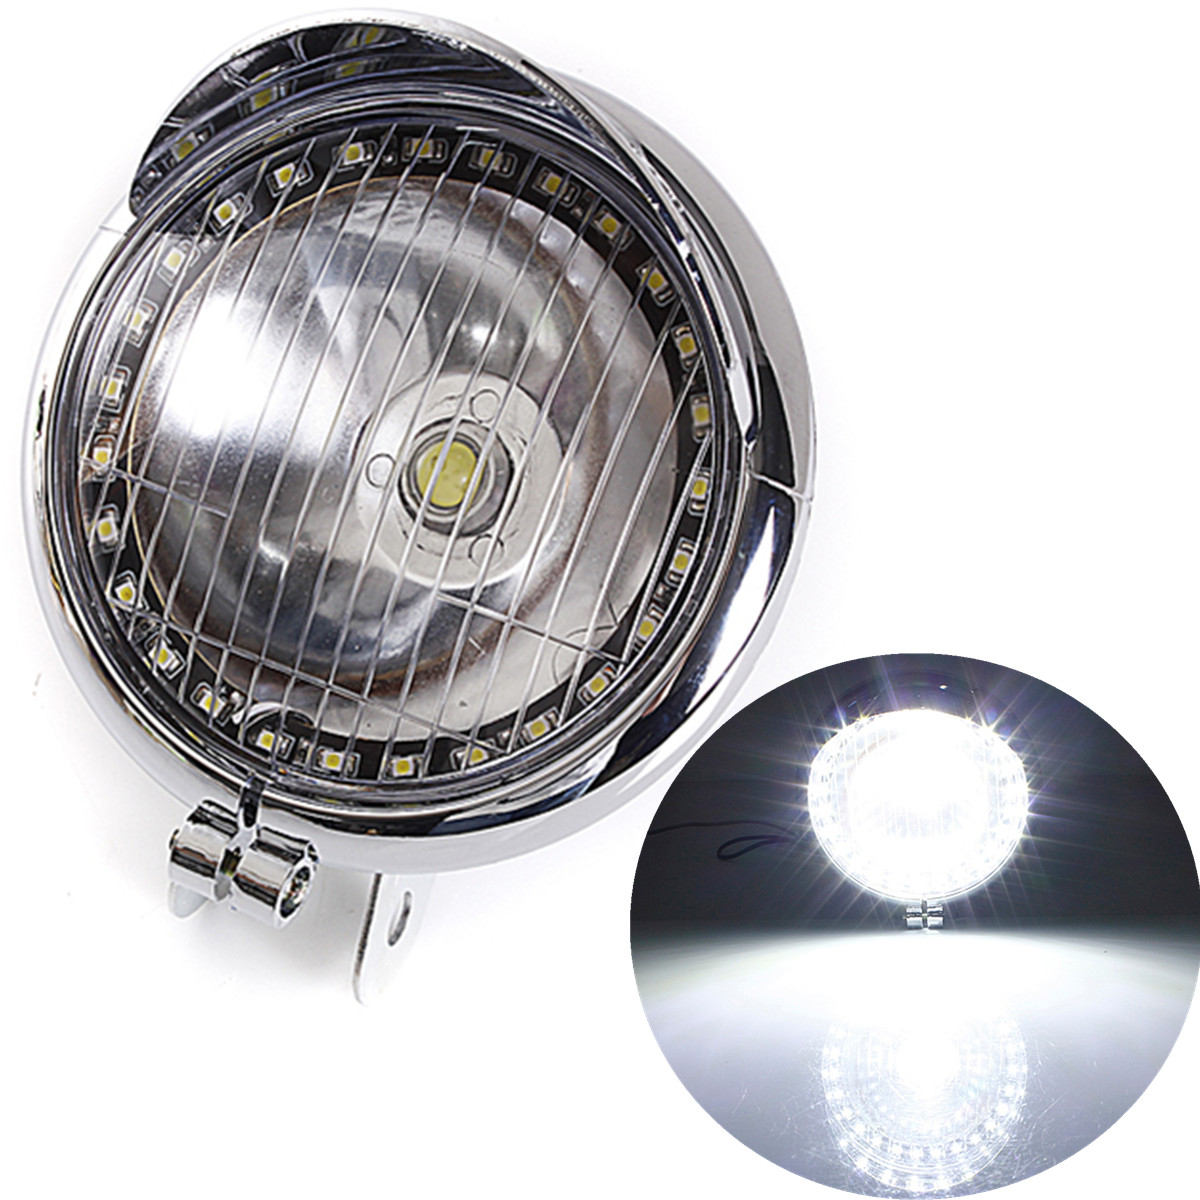 White 27 LED Motorcycle Angel Eye Headlight fog Lamp for Harley Chopper Bobber Cruiser Simple installation Headlights